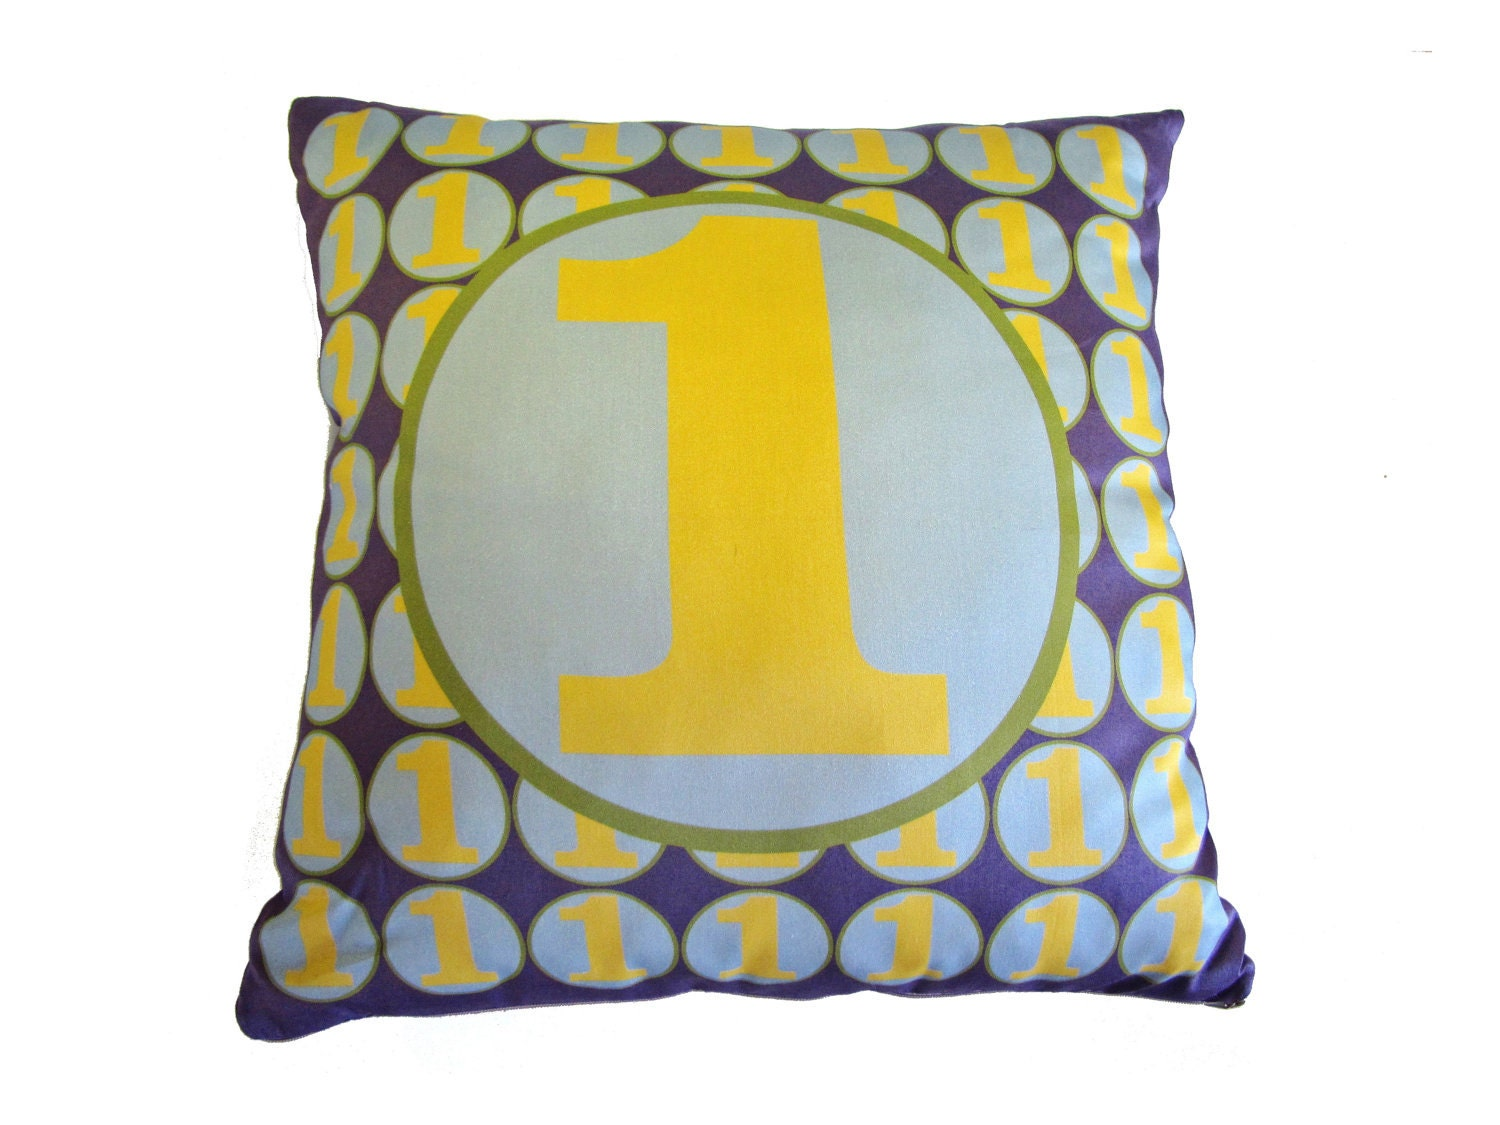 Throw Pillow With Numbers : SALE Monogram Number Pillow Decorative Pillow retro by numpillows